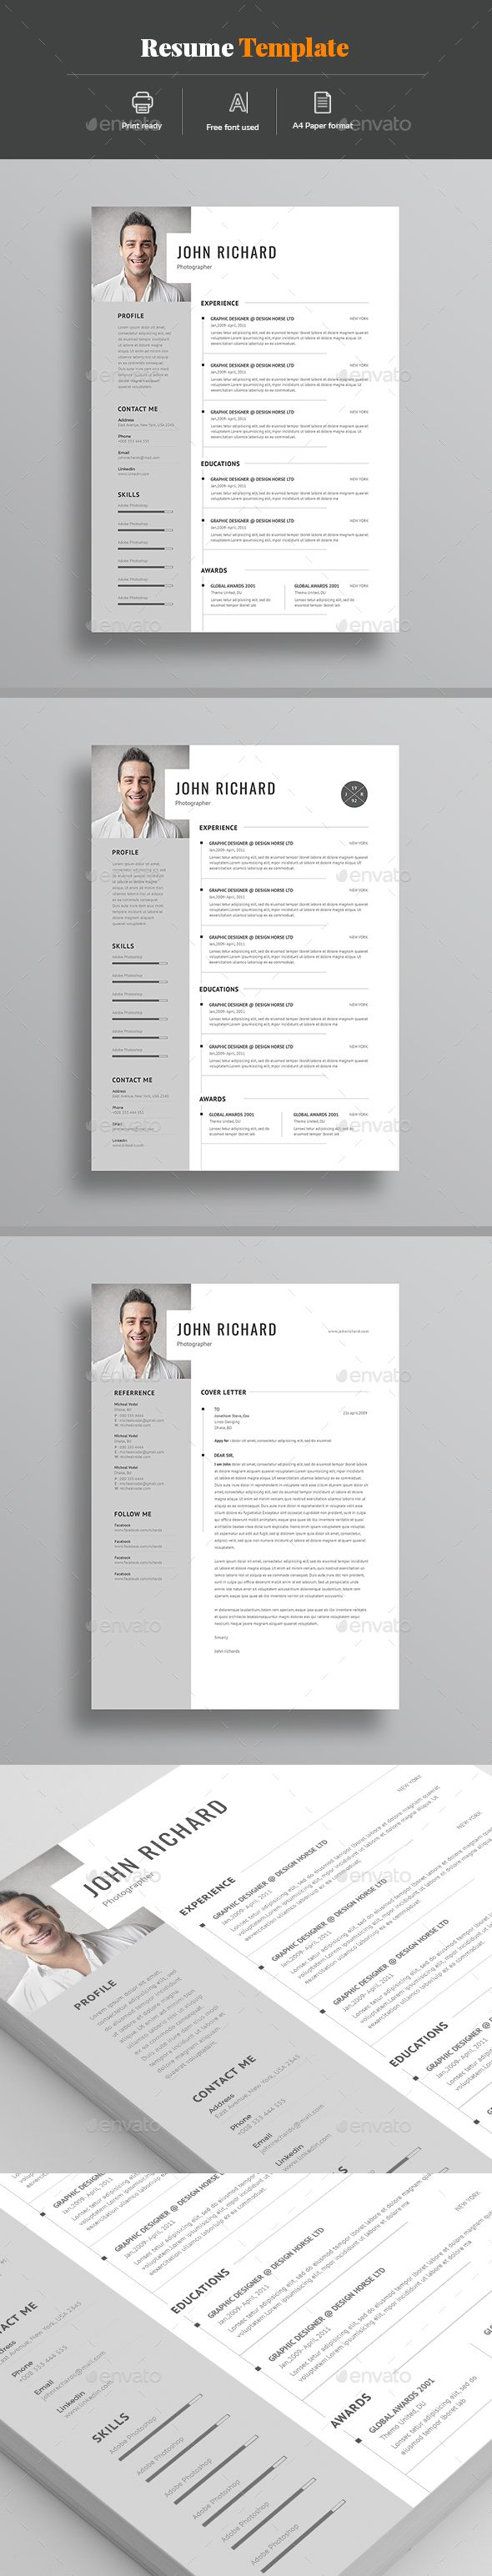 Resume Resumes Stationery Resume Pinterest